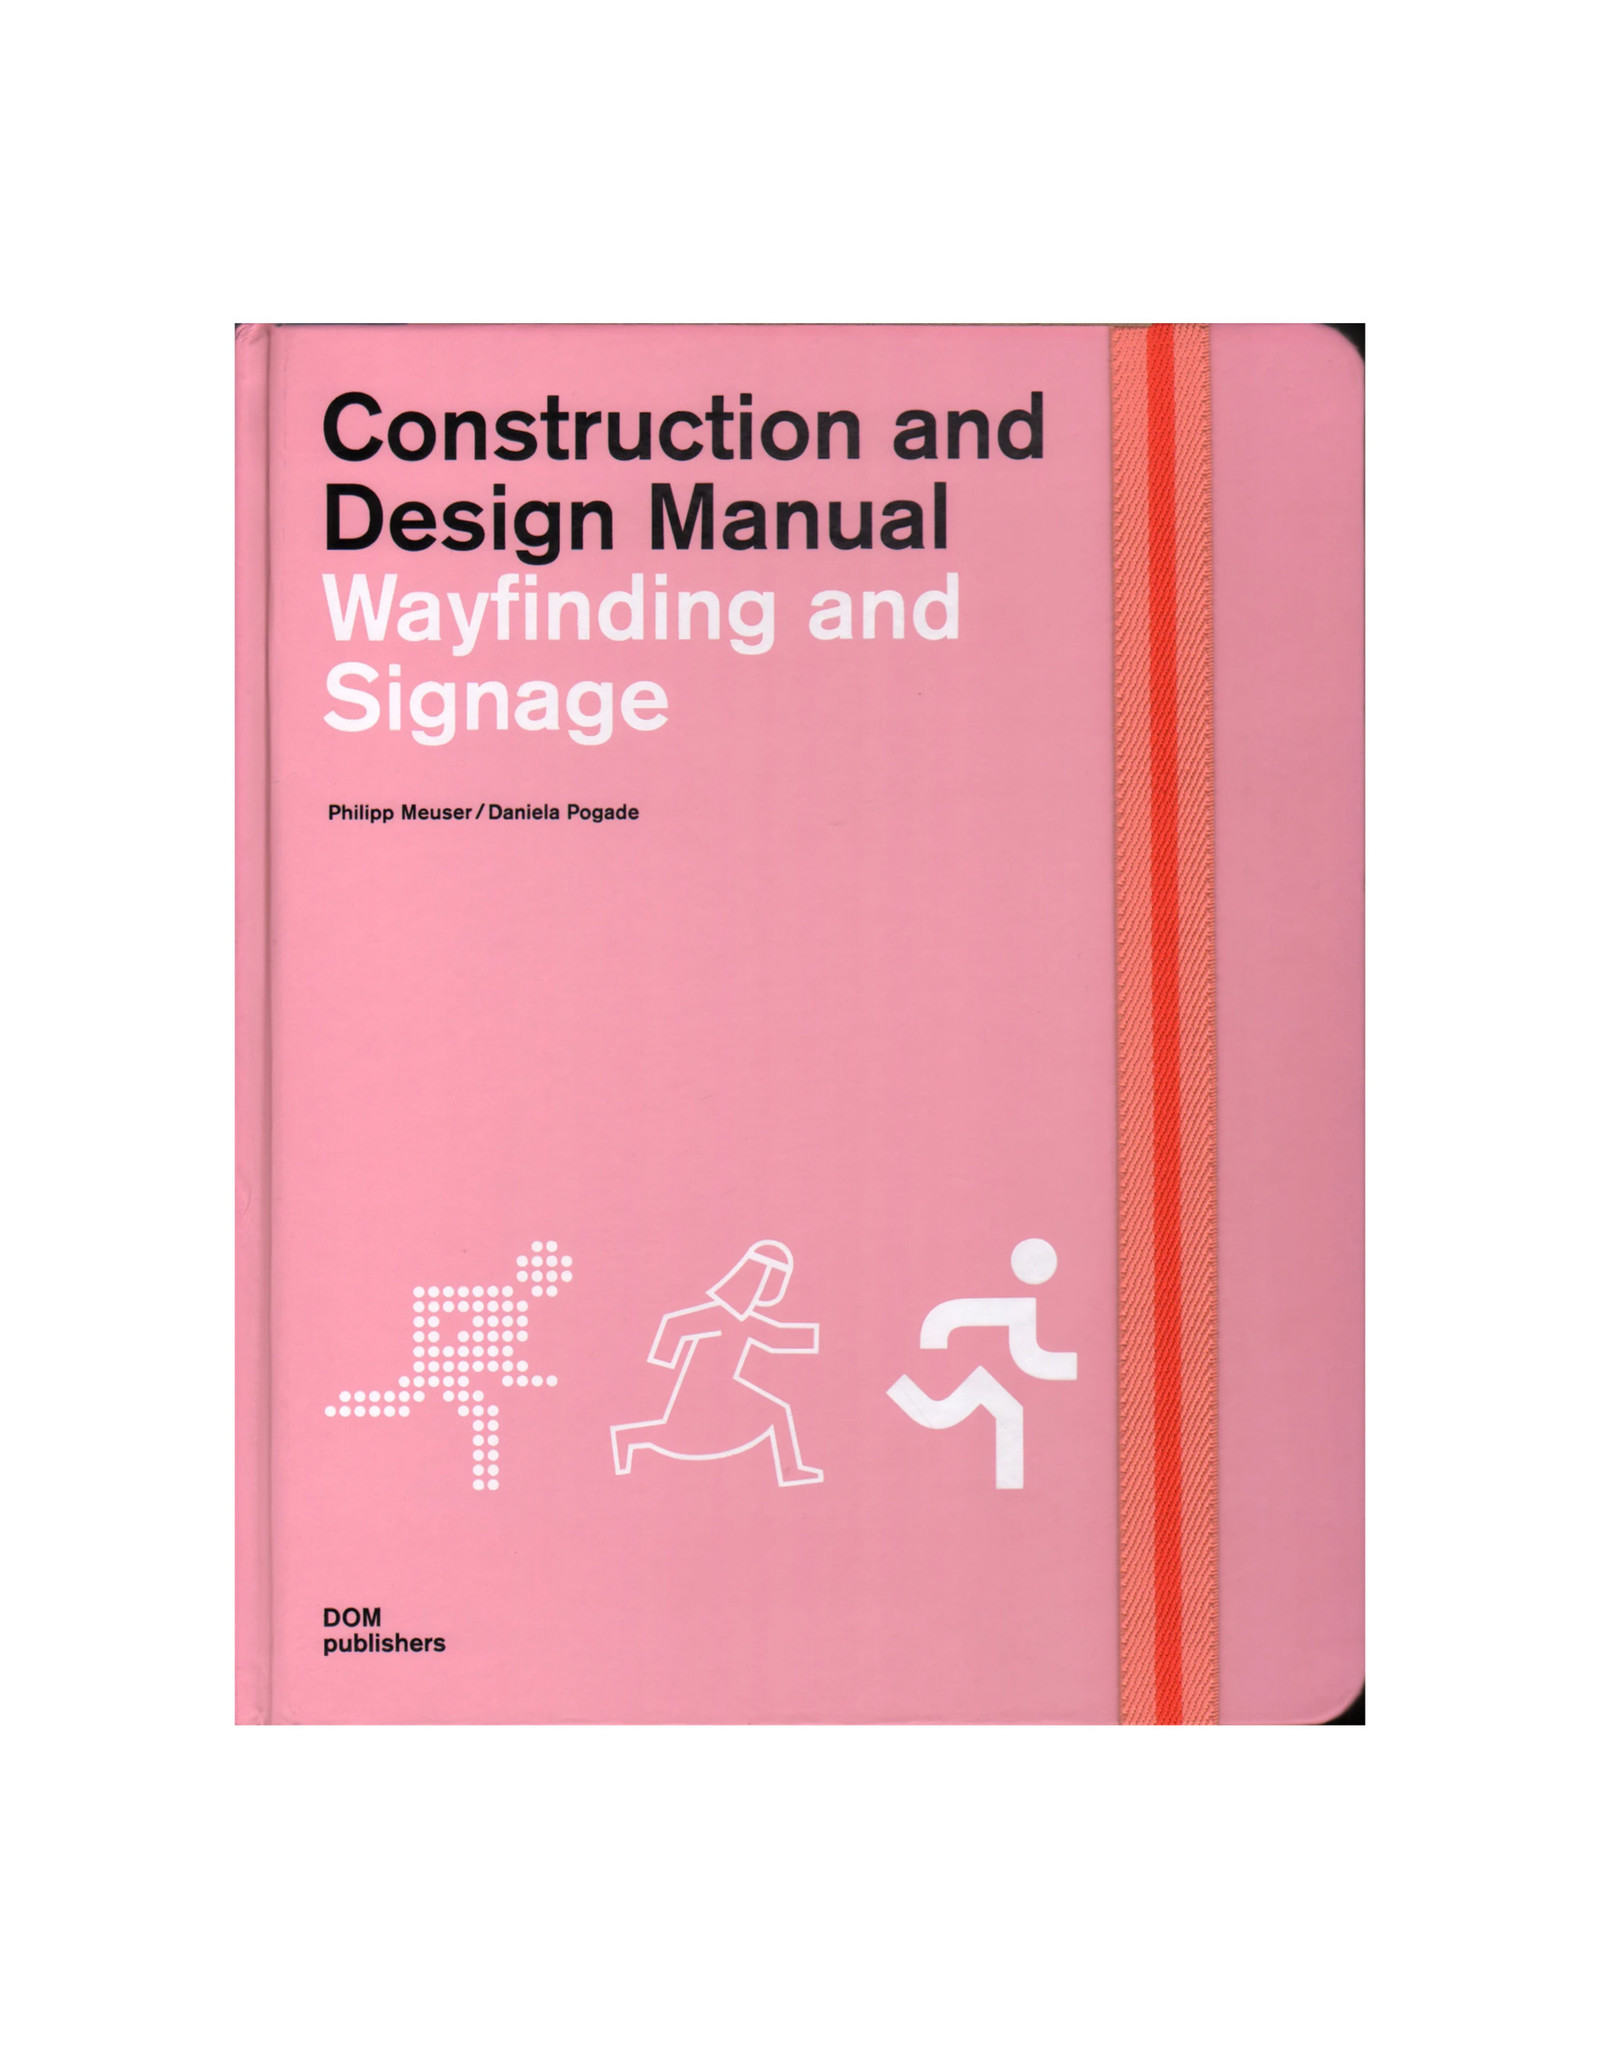 Construction and Design Manual: Wayfinding and Signage